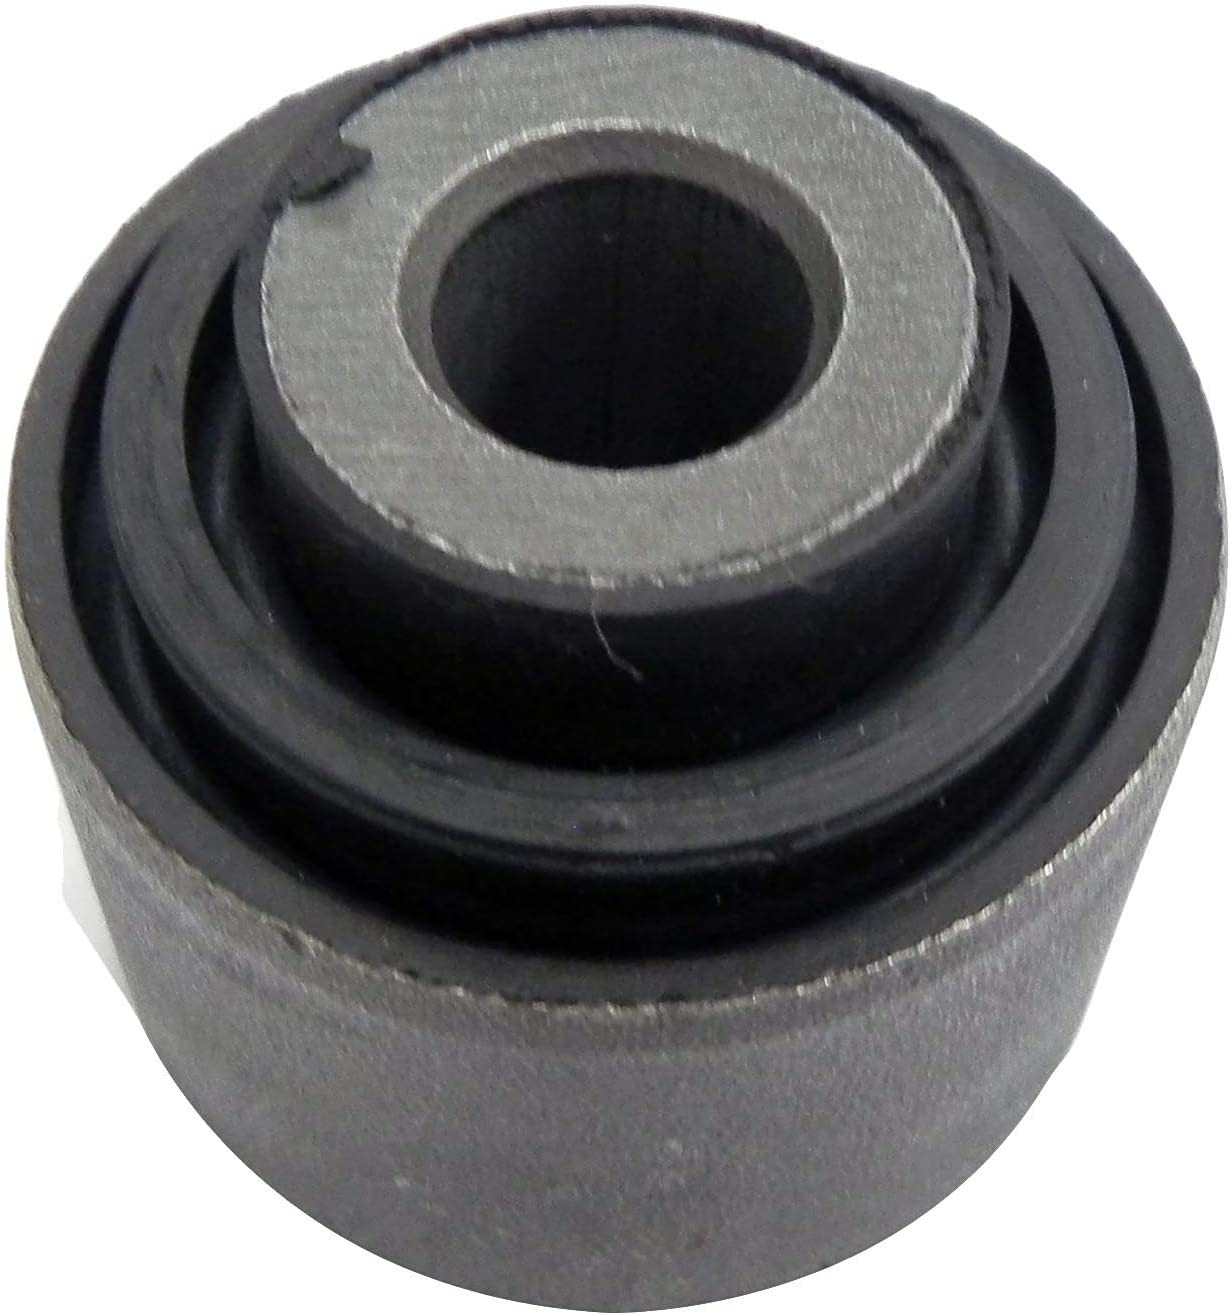 MAS BC581506 Rear Upper Outer Suspension Control Arm Bushing for Select Honda Models